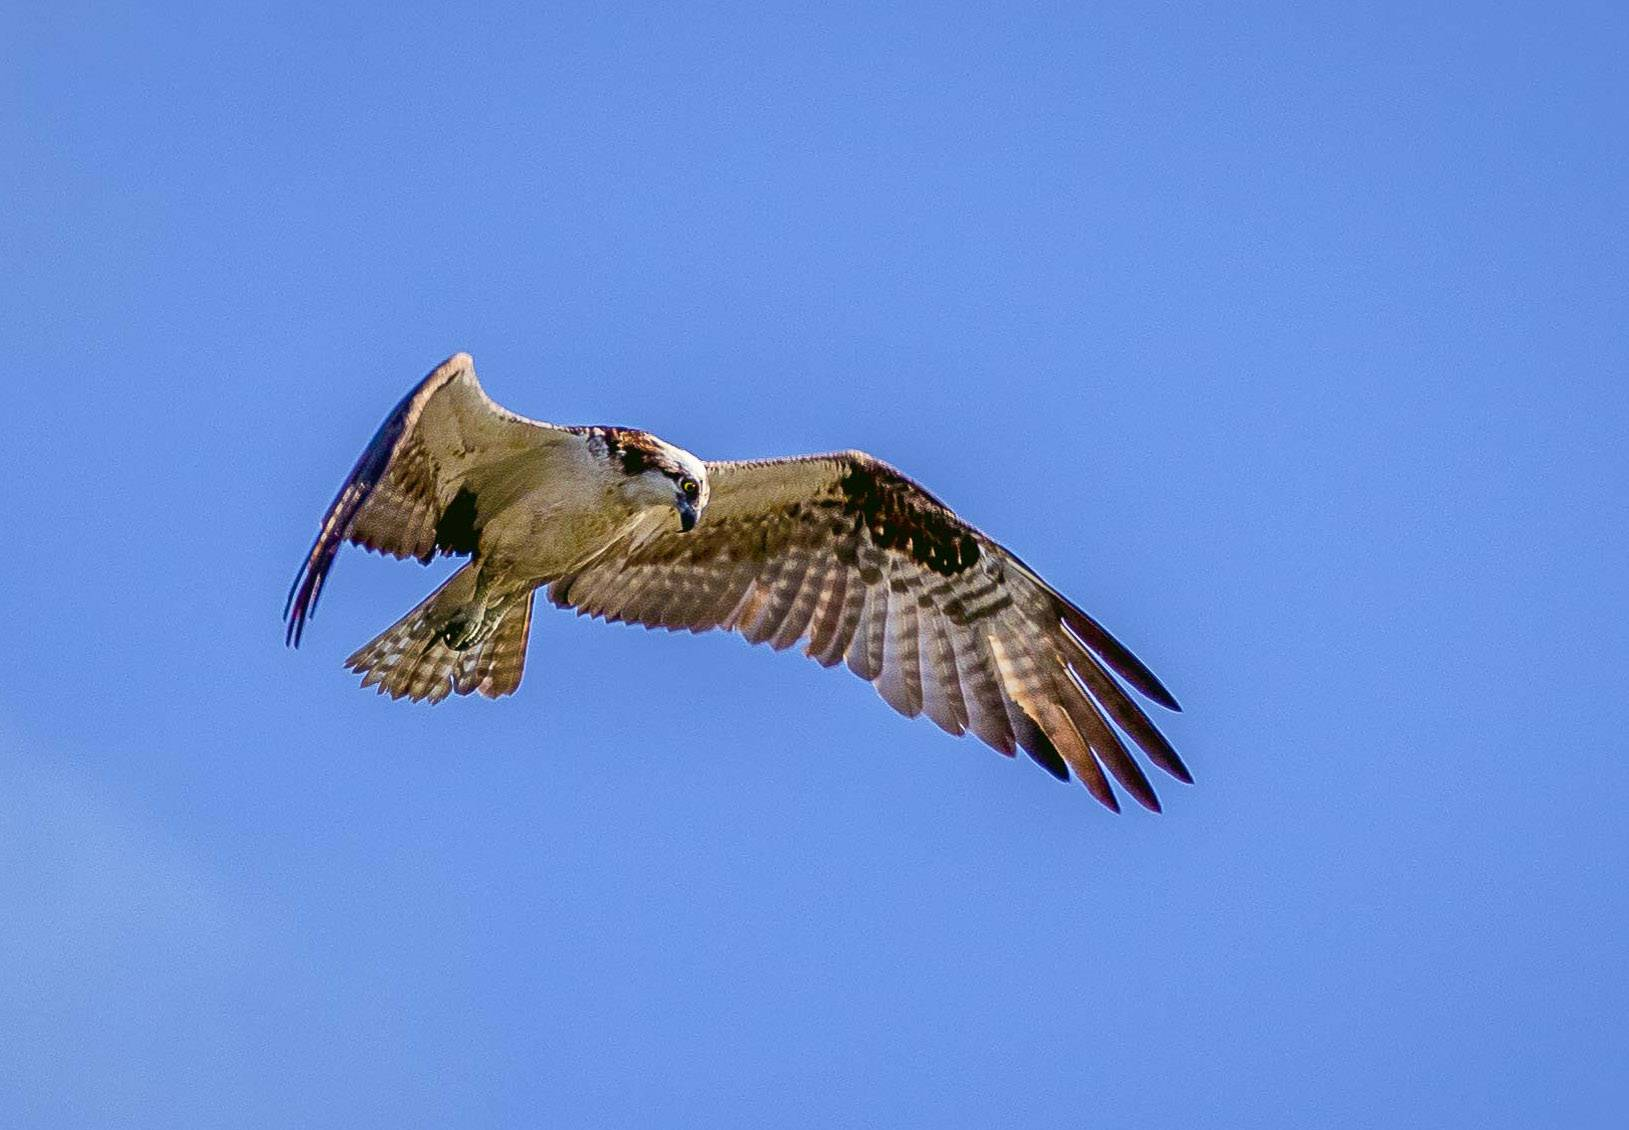 An osprey was recently spotted during a bird walk in Prospect Heights.